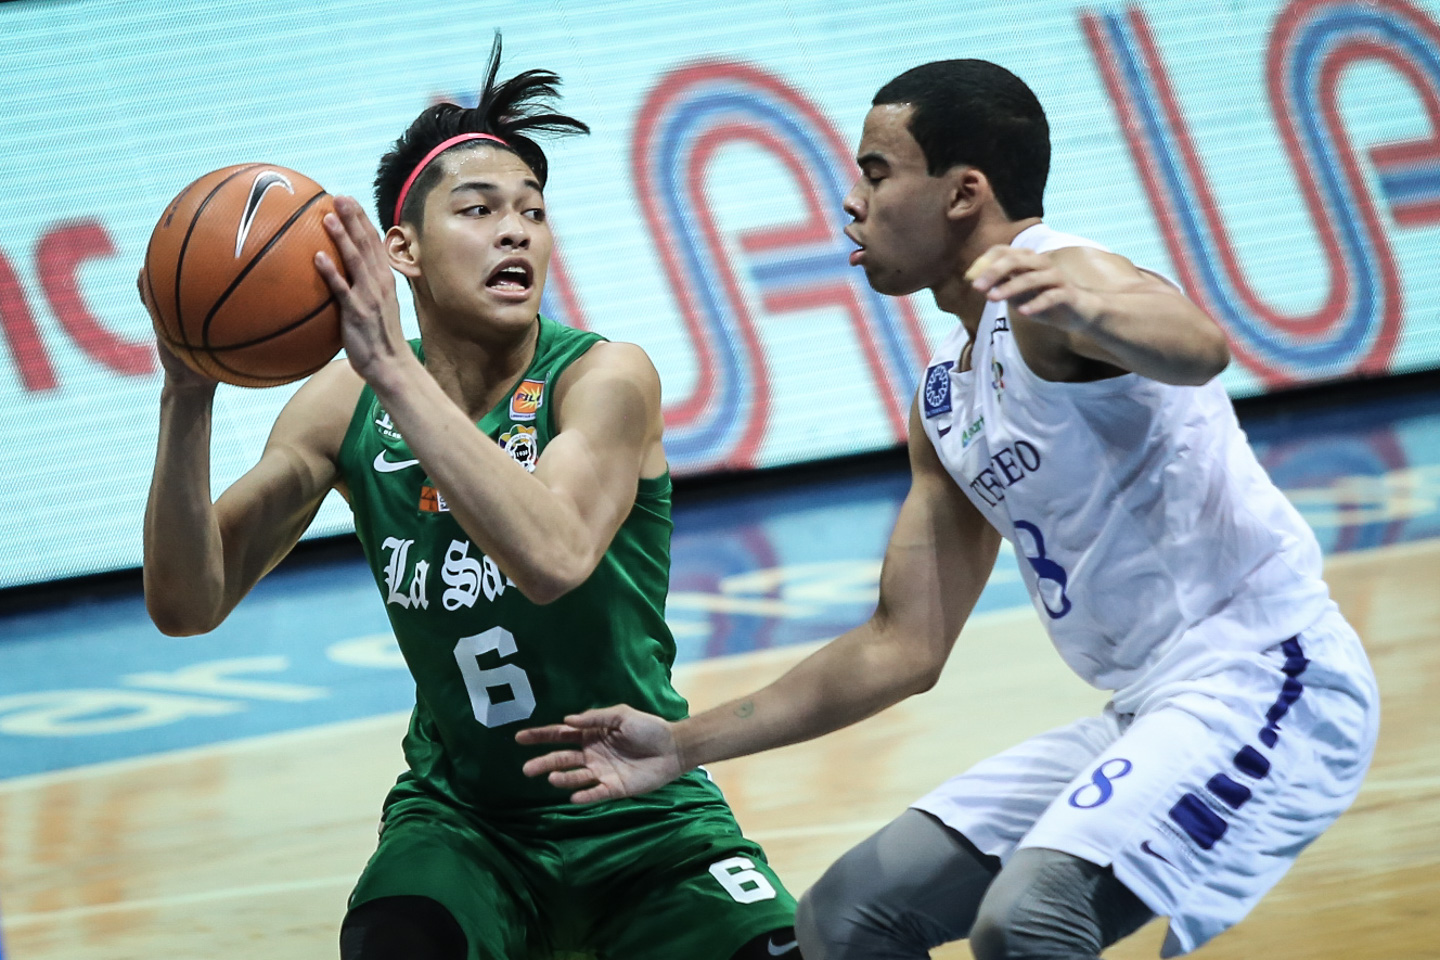 REVENGE. The Green Archers take game 2 of their rivalry match against the Blue Eagles. File Photo by Josh Albelda/Rappler